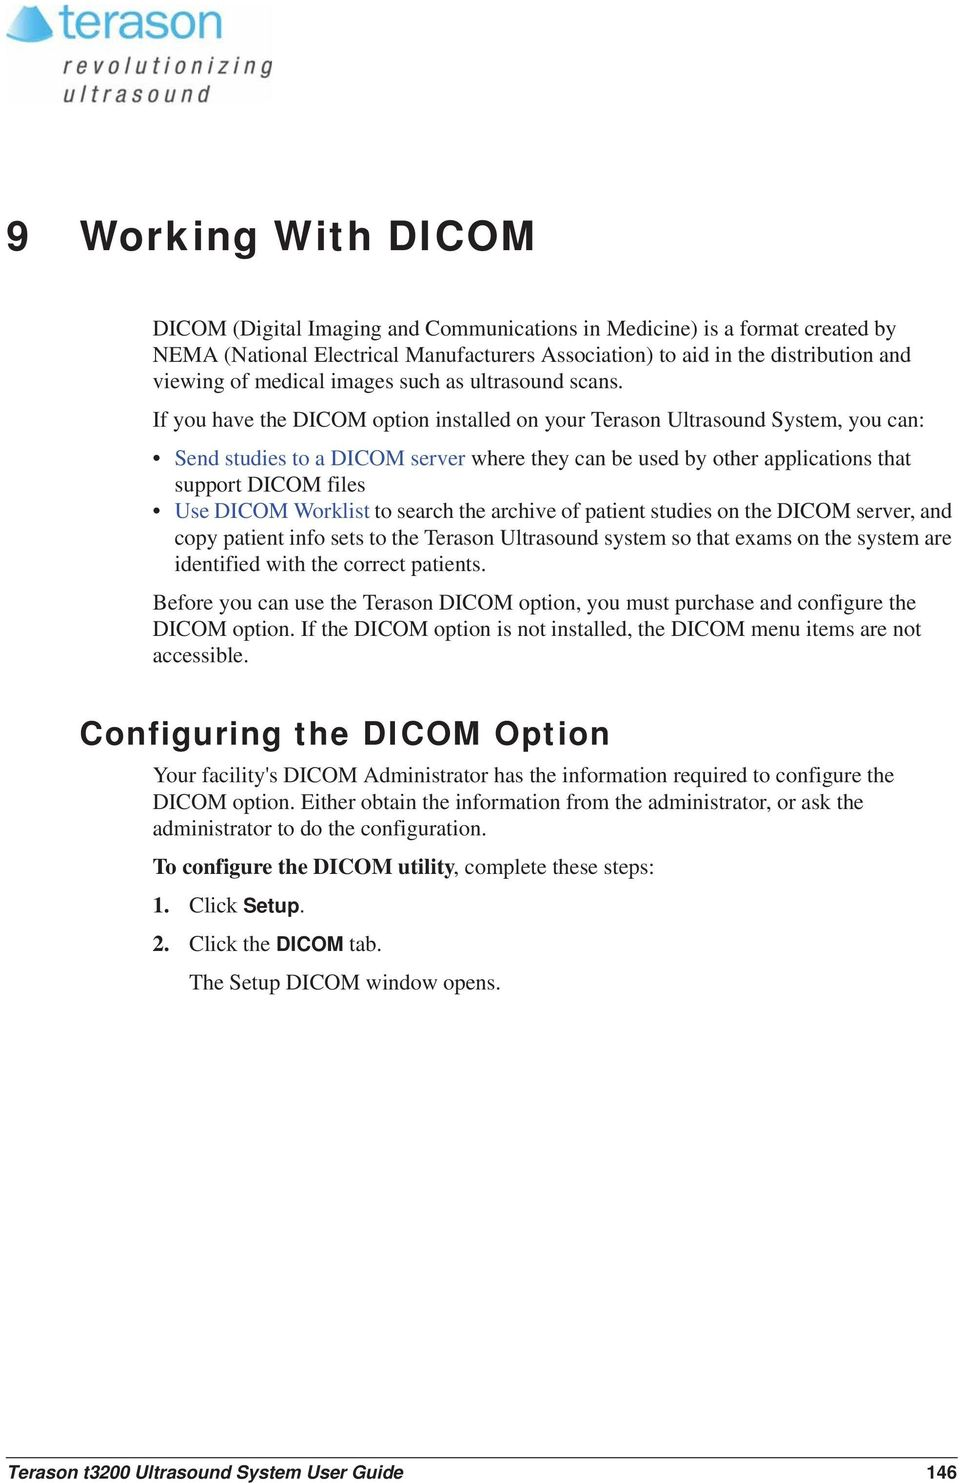 If you have the DICOM option installed on your Terason Ultrasound System, you can: Send studies to a DICOM server where they can be used by other applications that support DICOM files Use DICOM